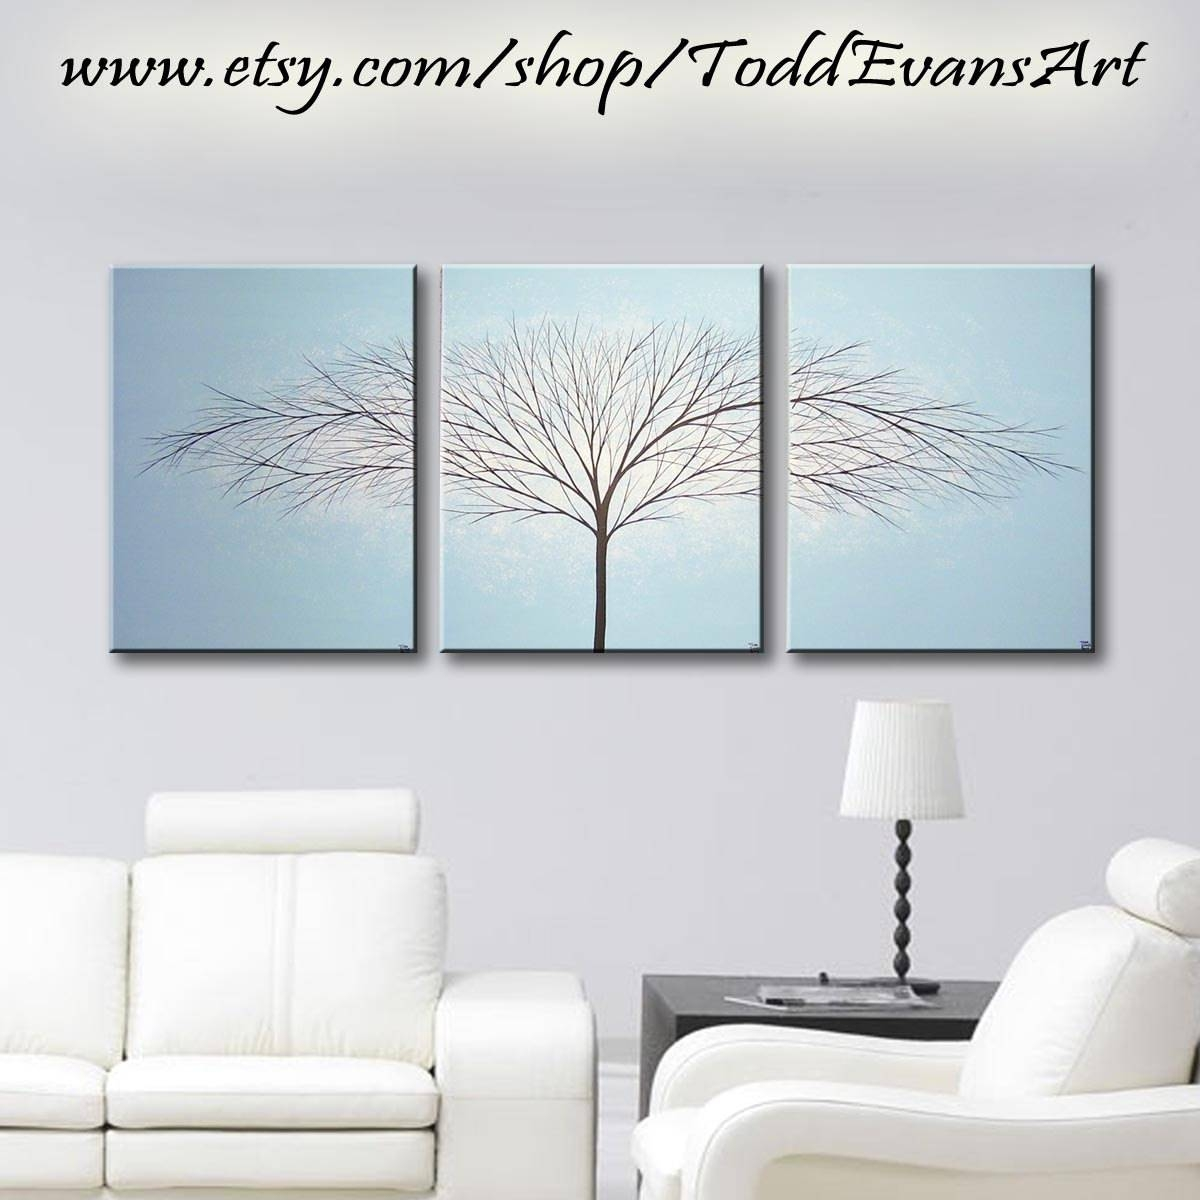 Tree Painting 3 Piece Wall Art Large Canvas Art Painting For Most Current Canvas Wall Art 3 Piece Sets (View 13 of 20)